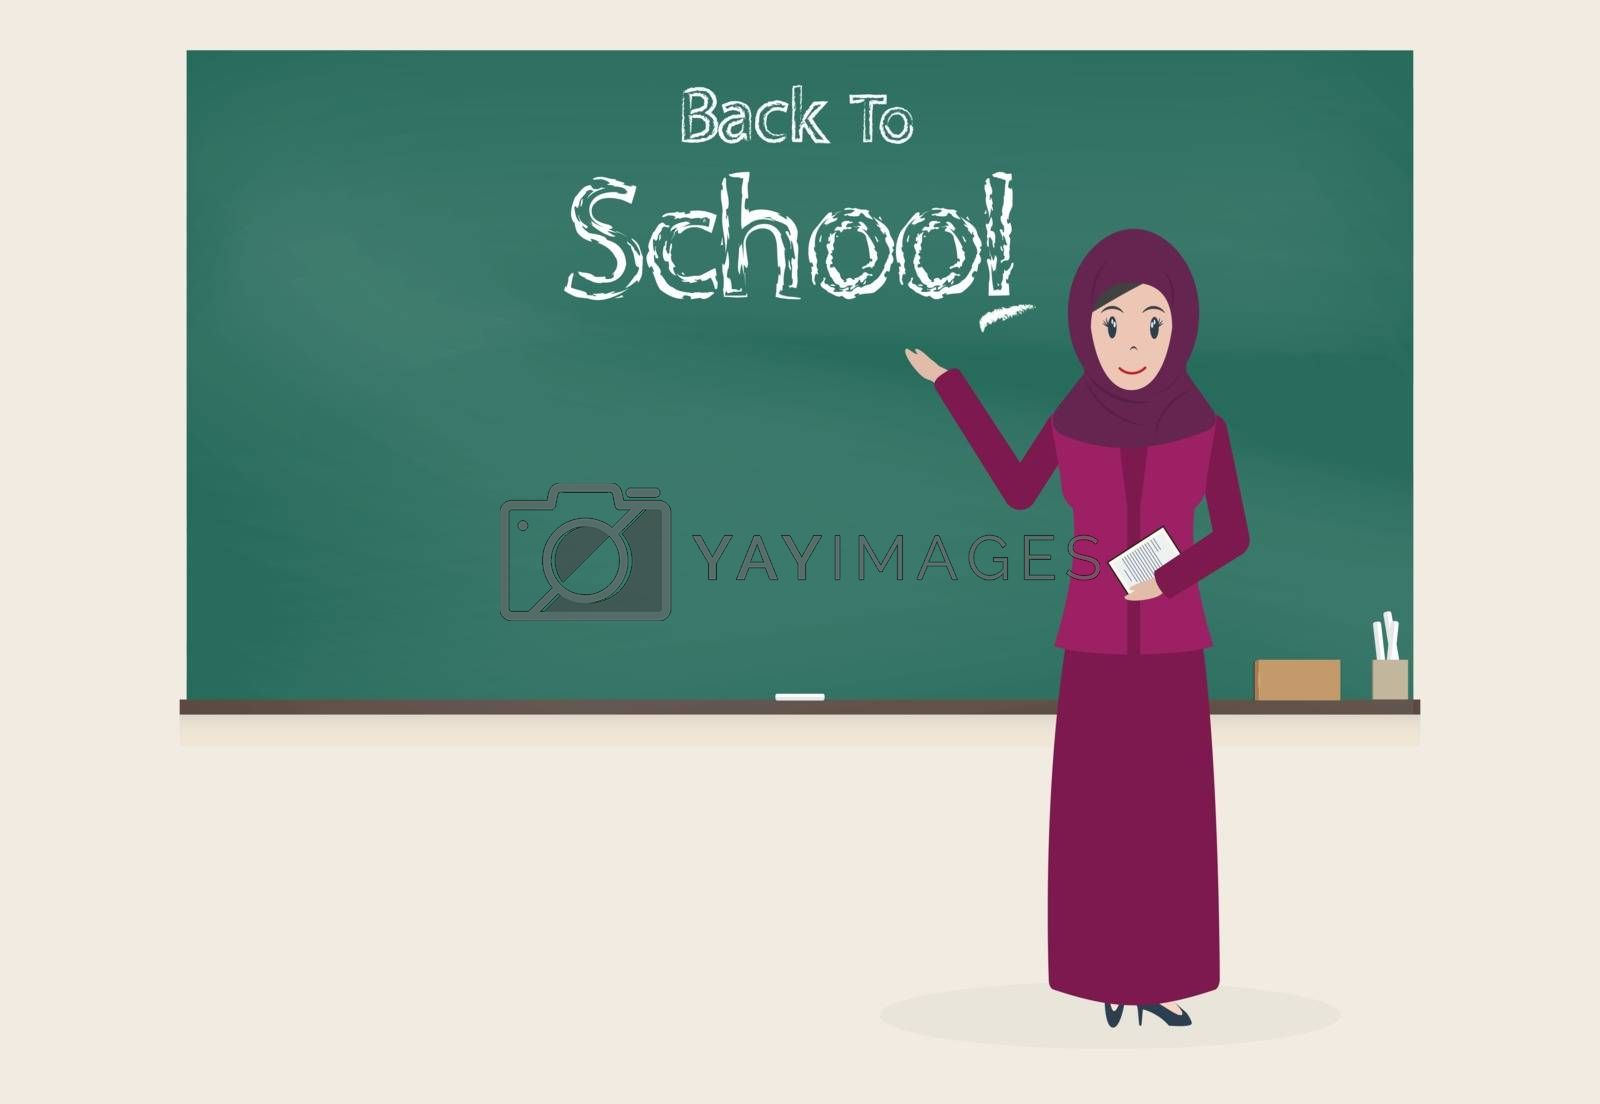 Muslim female teacher and Back to school text chalkboard backgro by Kheat